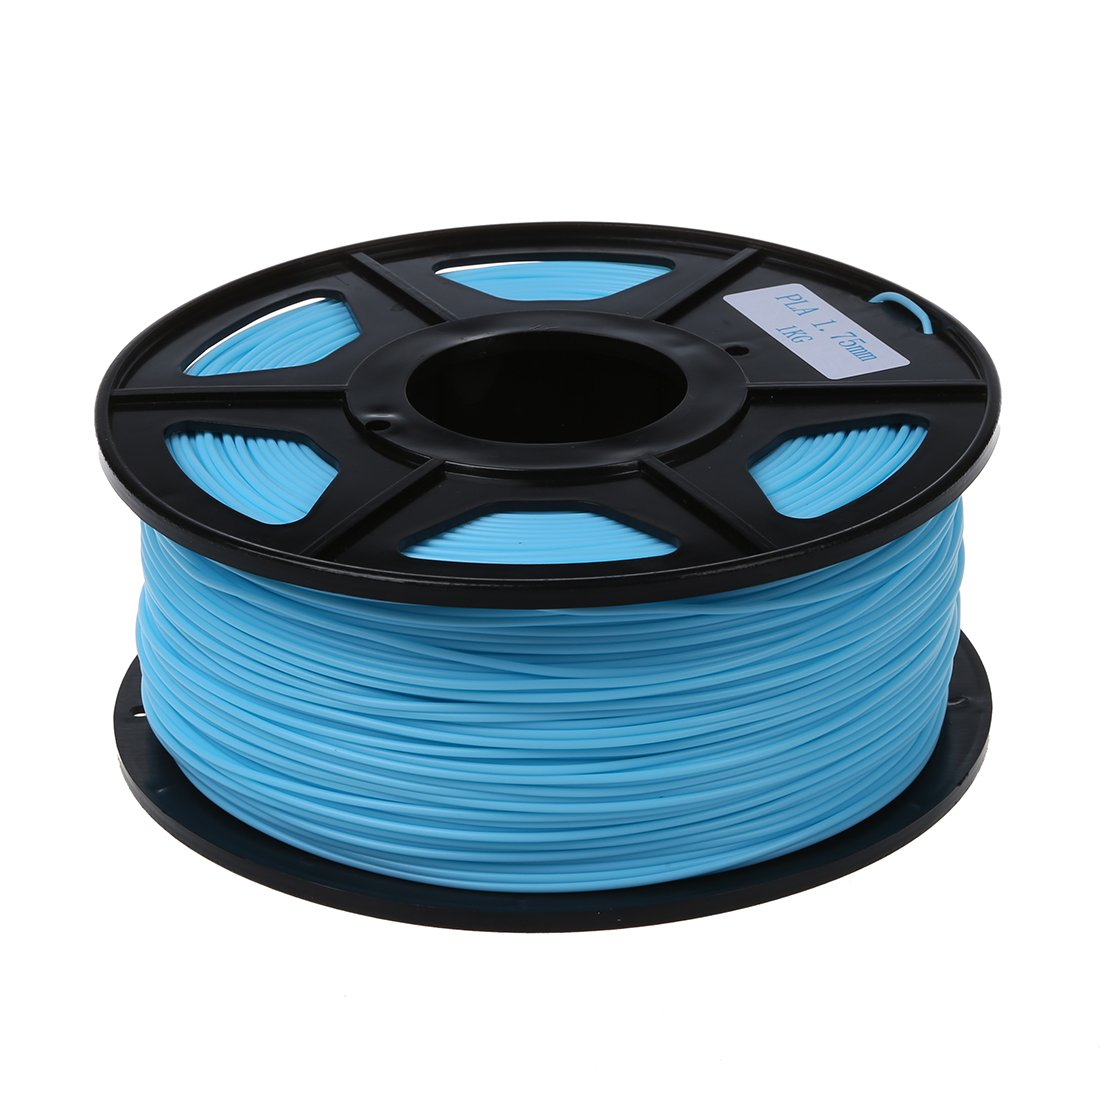 Abs 3d Printer Filament Silver 1.75mm Or 3.0mm 3d Printer Consumables Computers/tablets & Networking